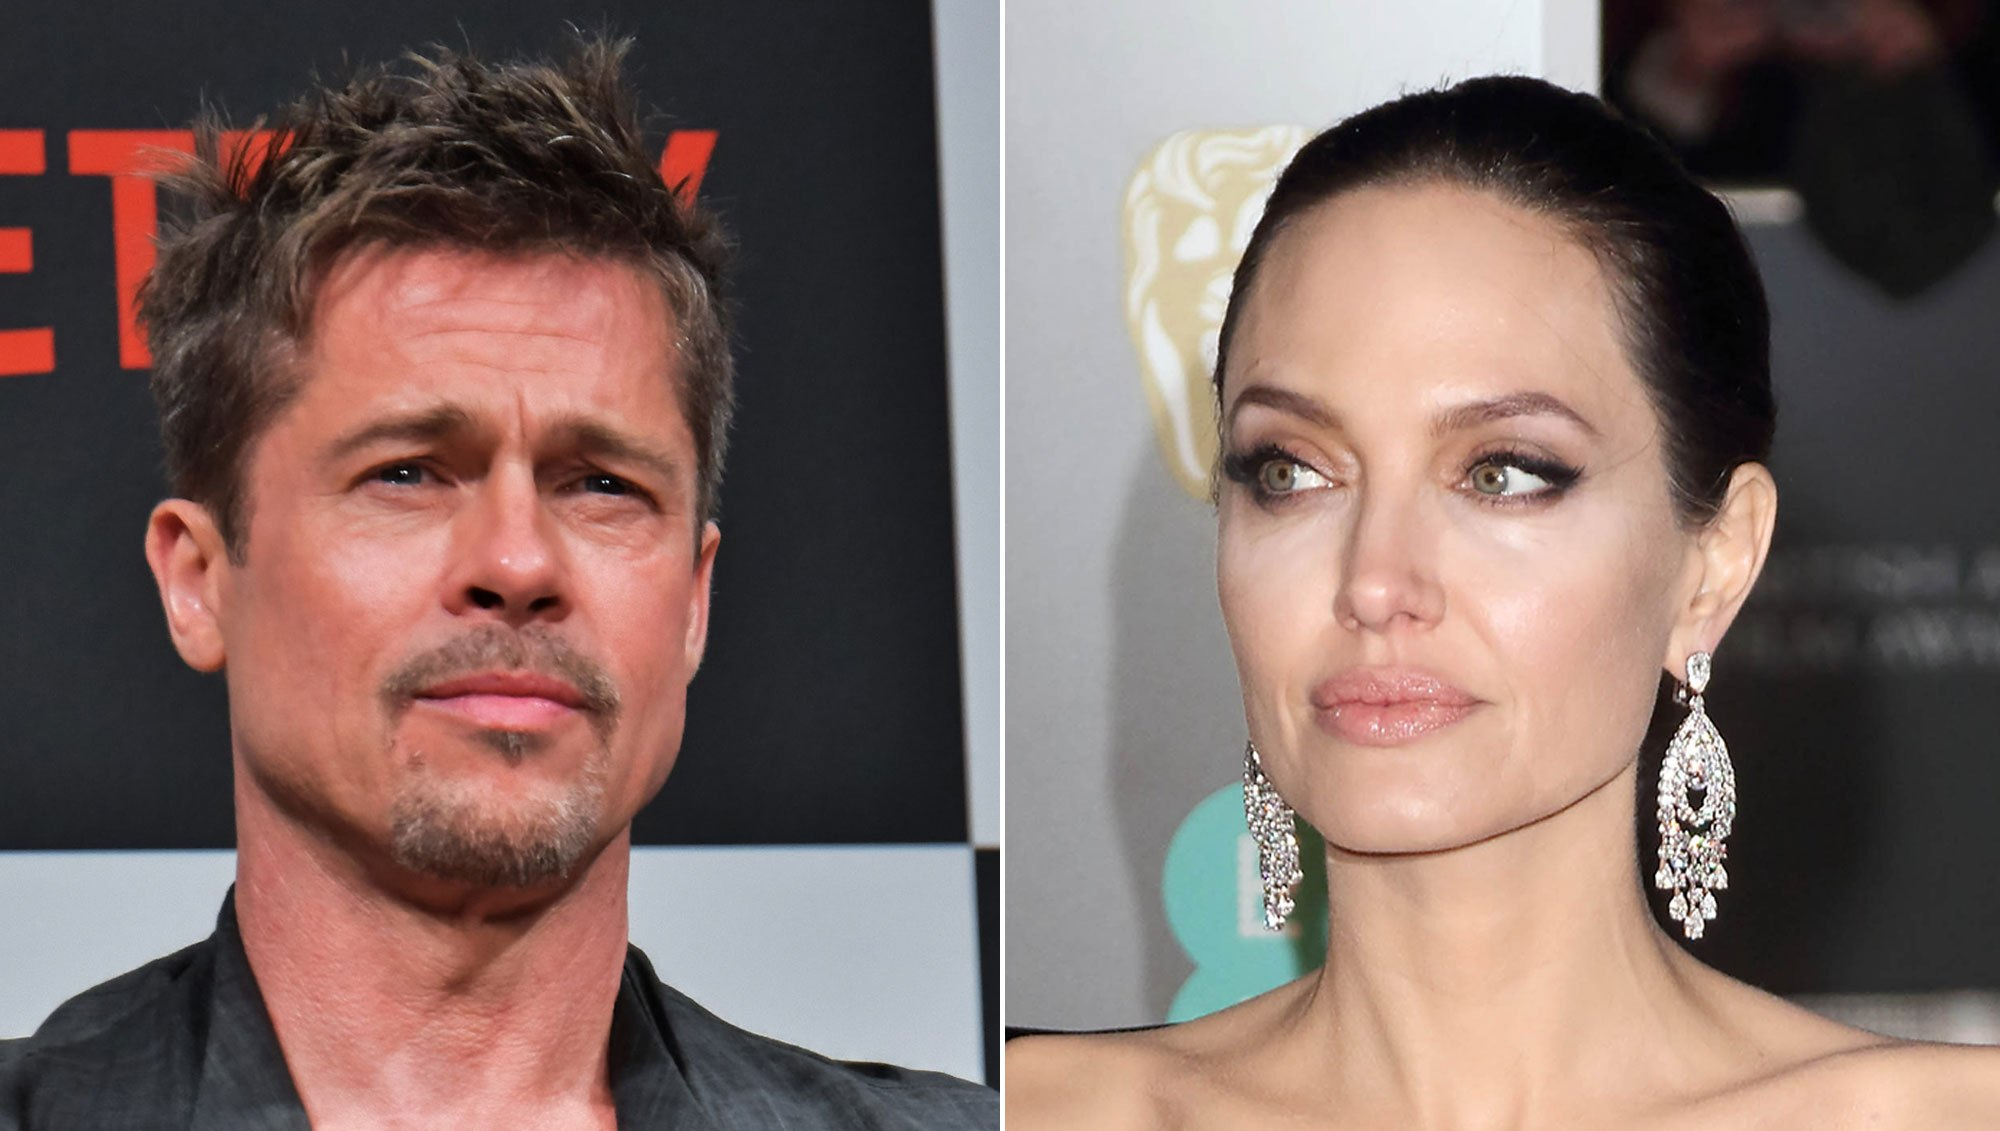 Brad Pitt 'Reached Out' to Angelina Jolie With One Last Plea Ahead of Custody Trial